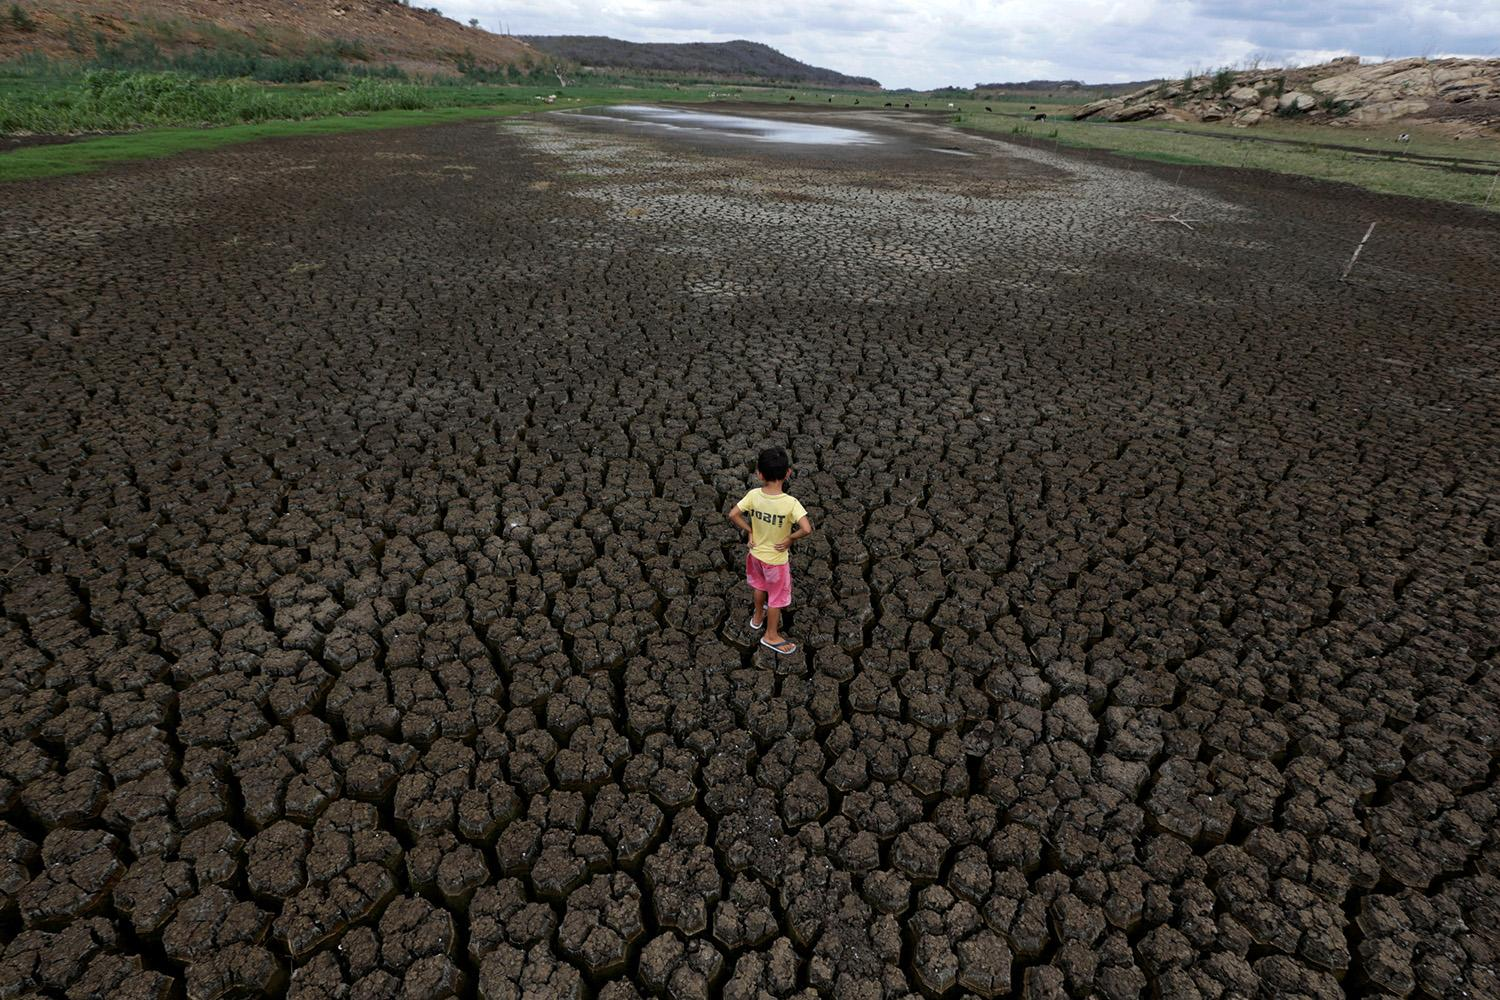 <p>Natan Cabral, 5, stands on the cracked bed of the Boqueirao Reservoir in the Metropolitan Region of Campina Grande, Paraiba state, Brazil, Feb. 13, 2017. (Photo: Ueslei Marcelino/Reuters) </p>